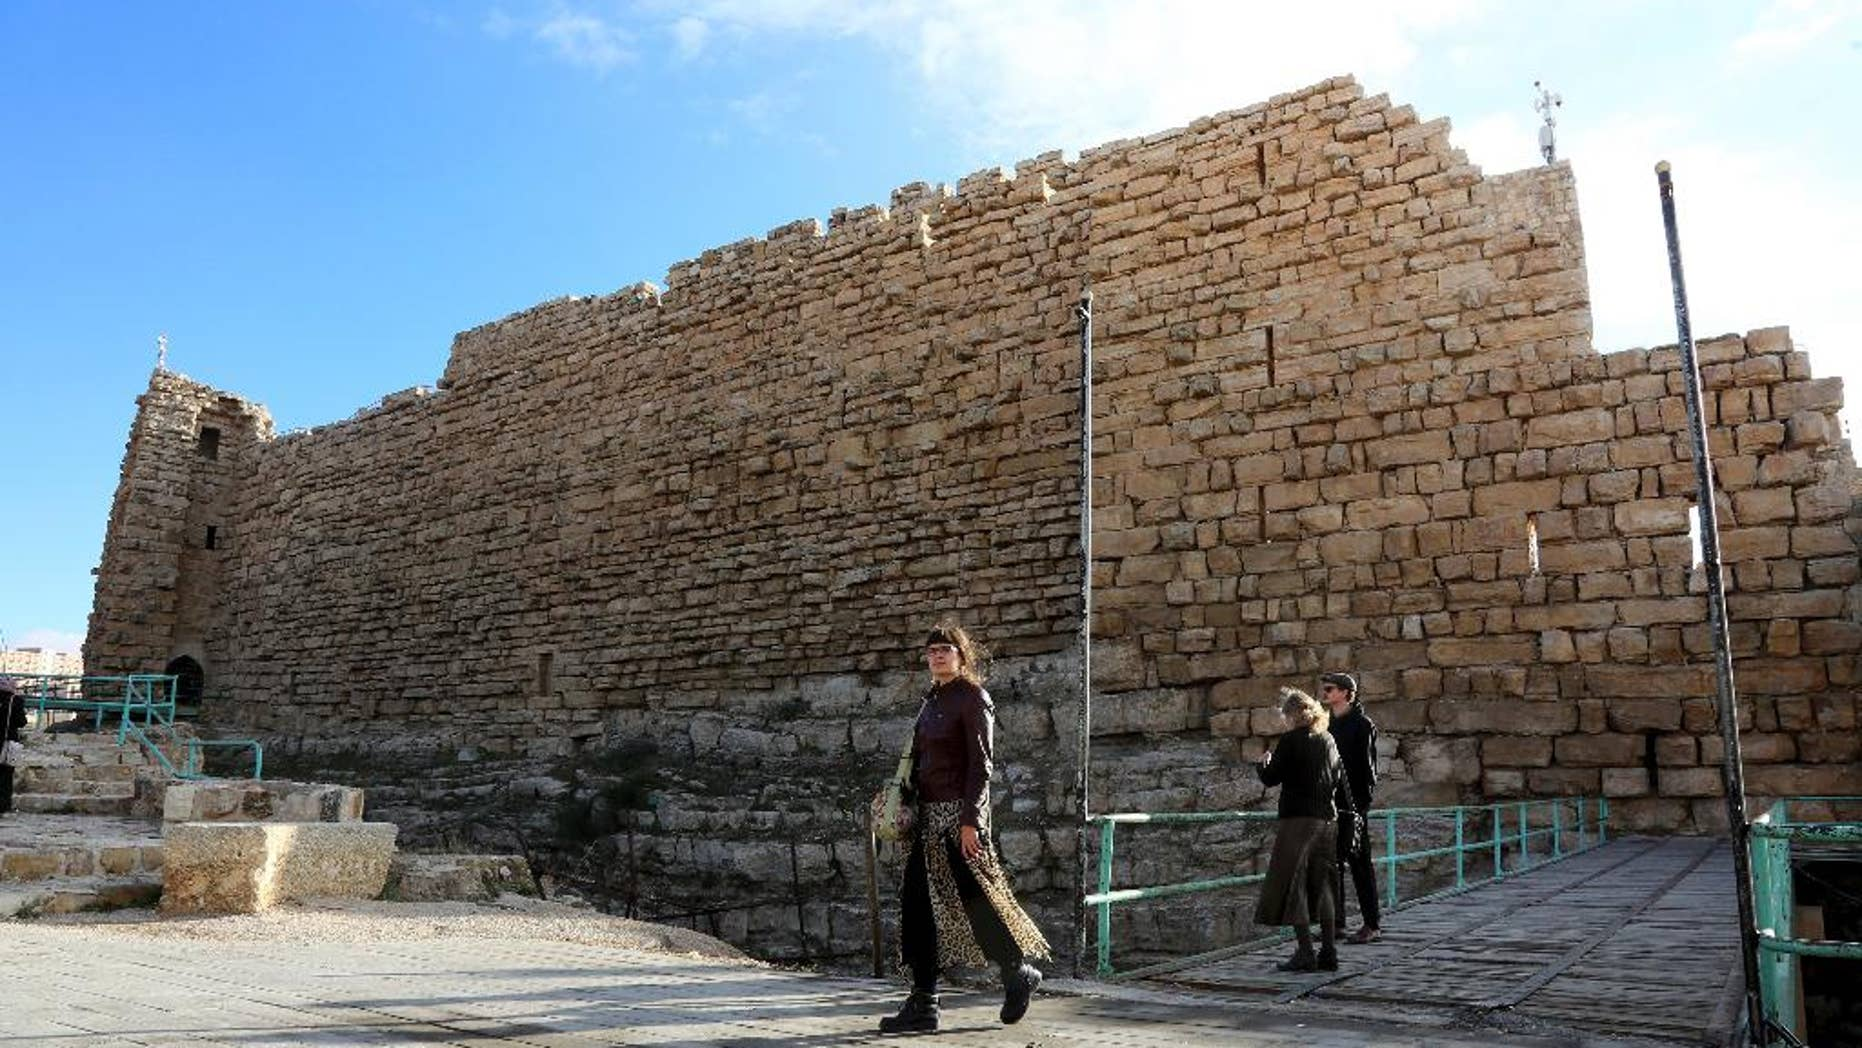 In this Wednesday, Jan. 4, 2017 photo, tourists walk near the entrance to Karak Castle, Jordan. The recent Islamic State shooting rampage at Karak Castle, a popular tourism site in Jordan, where 10 people were killed, could signal a more aggressive campaign by the extremist group to destabilize the pro-Western kingdom. A senior security official says members of the Karak cell, who were killed during the attack, had planned New Year's Eve attacks in Jordan, using five explosives belts. Jordan's government tries to allay concerns, saying its security forces can contain any threat. (AP Photo/Raad Adayleh).